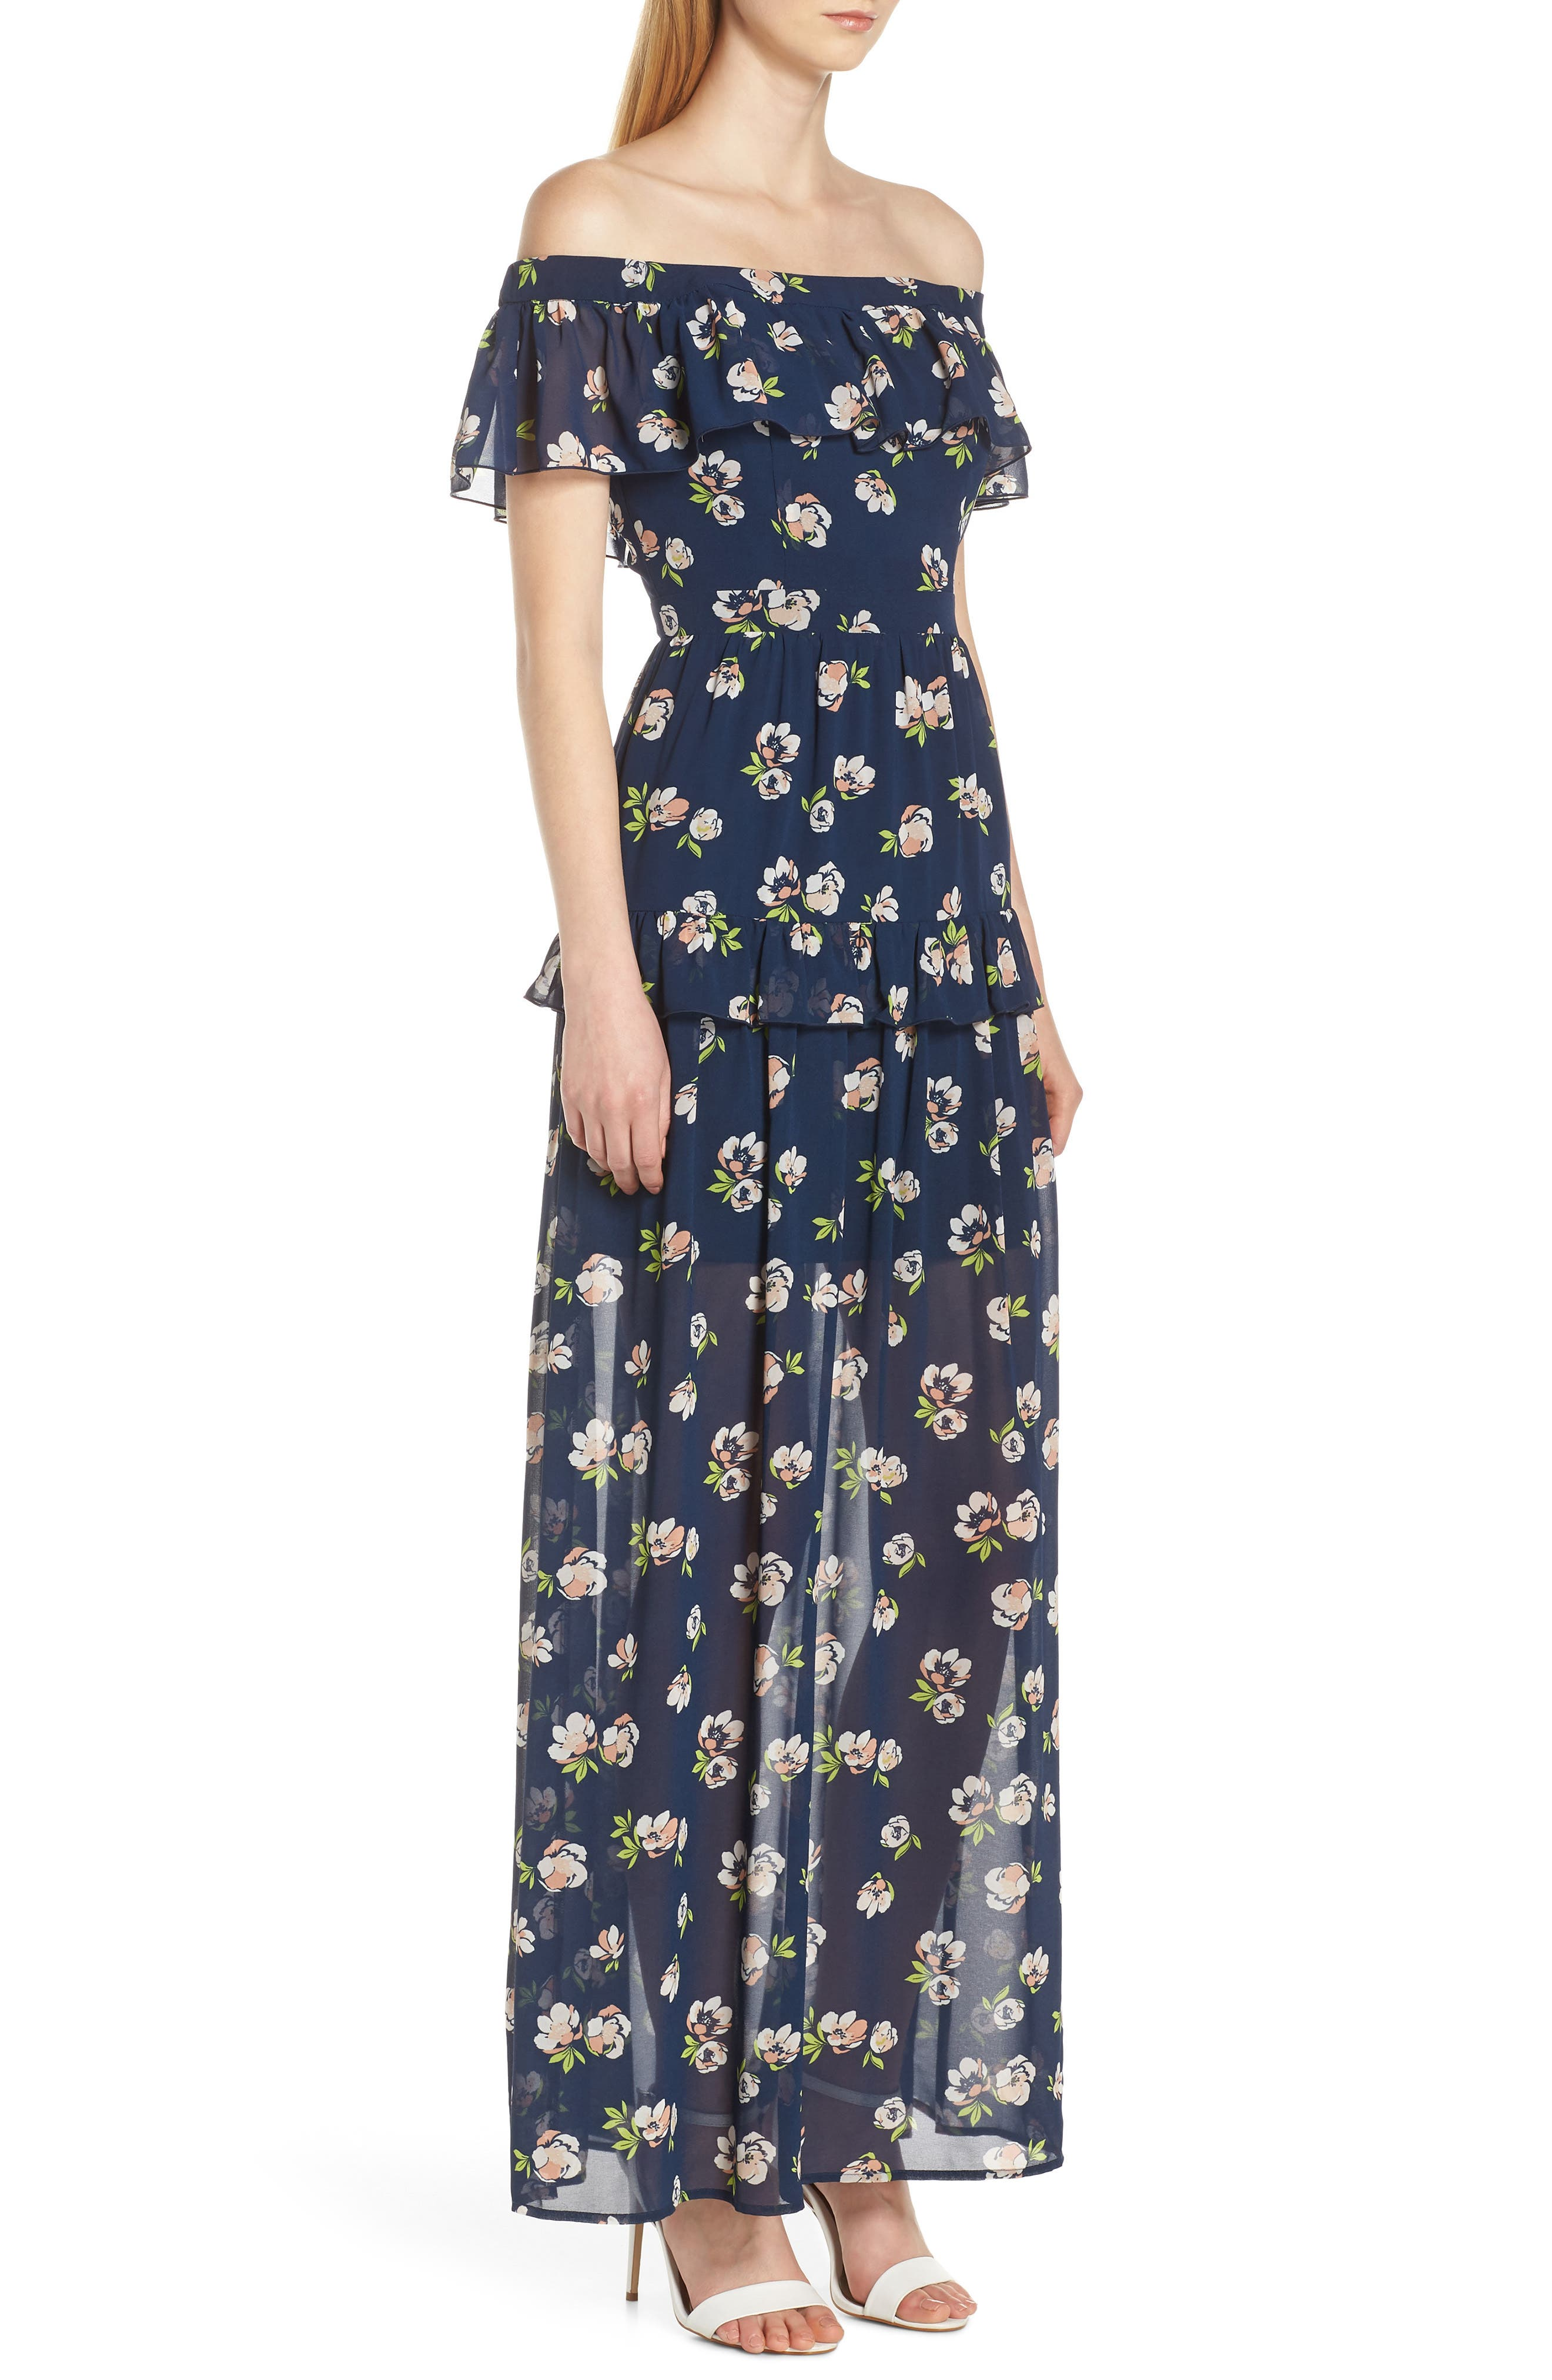 CHARLES HENRY, Off the Shoulder Ruffle Maxi Dress, Alternate thumbnail 4, color, NAVY PEACH FLORAL